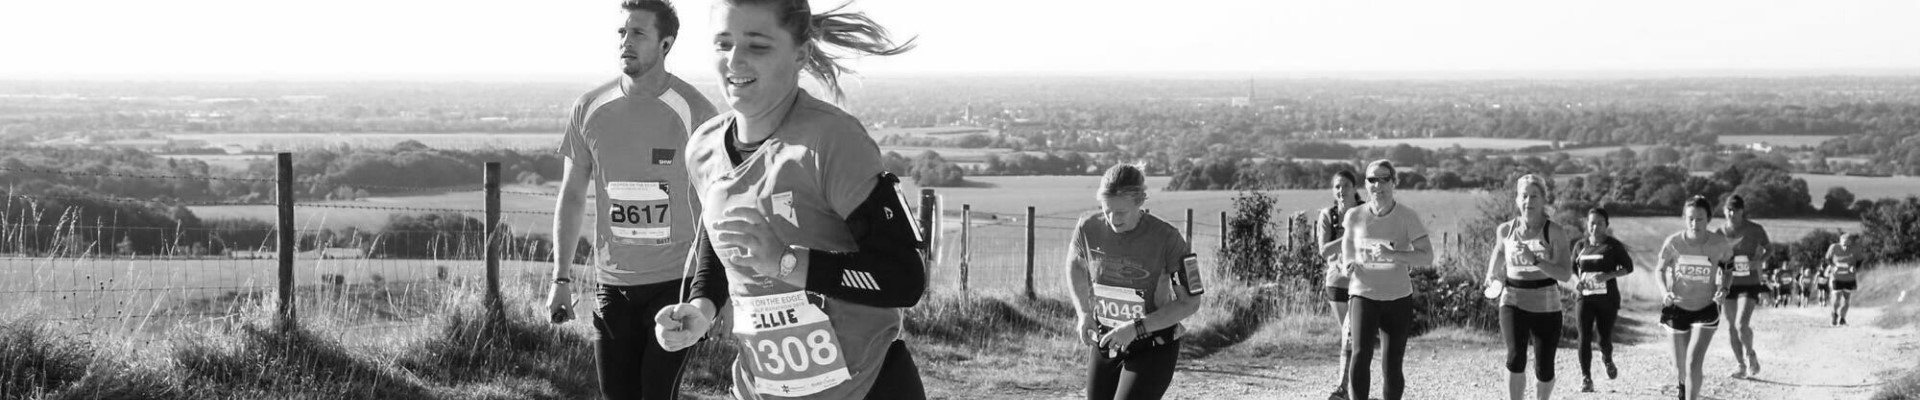 Children on the Edge Chichester Half Marathon 2019